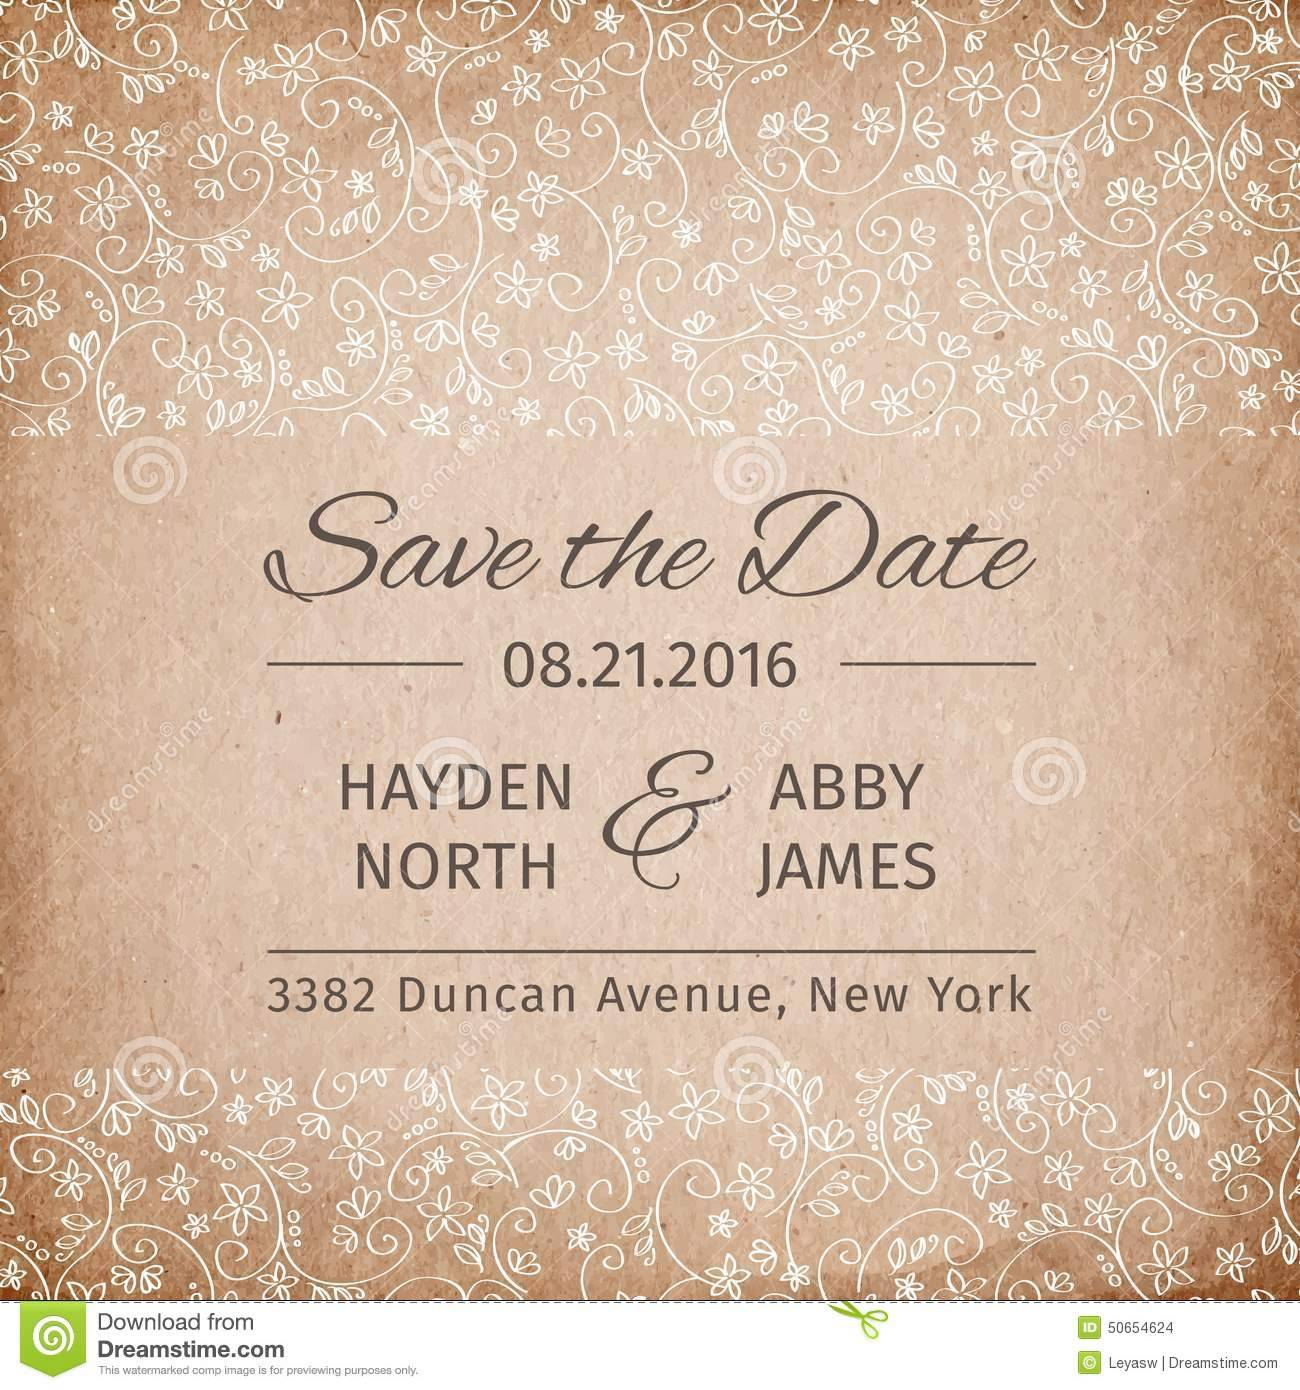 Vintage Save The Date Templates Free